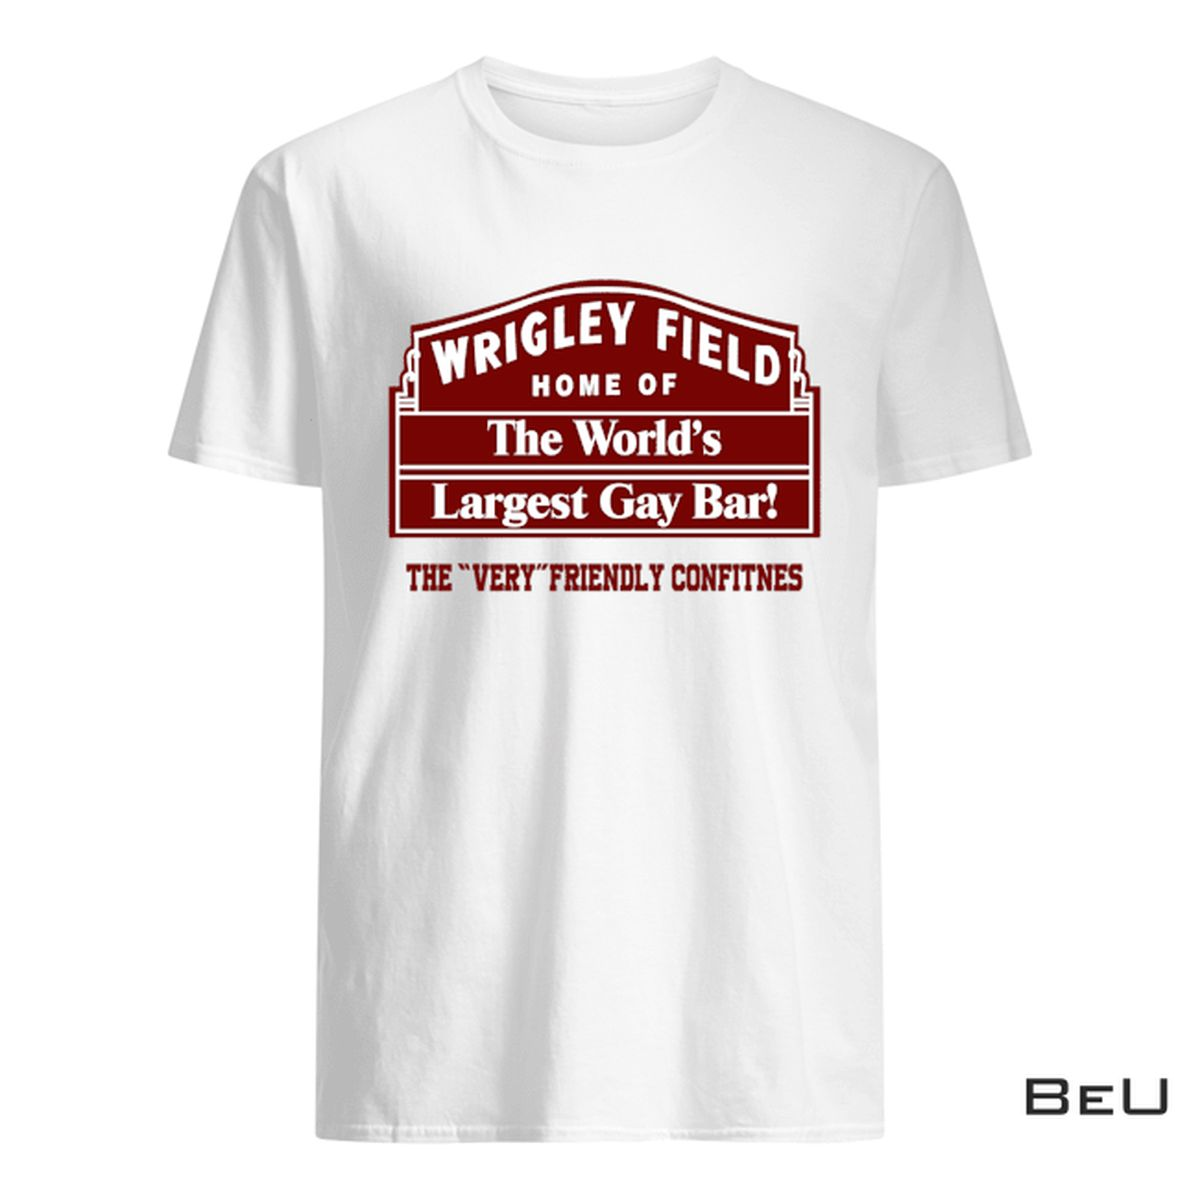 Wrigley Field Home Of The World's Largest Gay Bar Shirt, hoodie, tank top